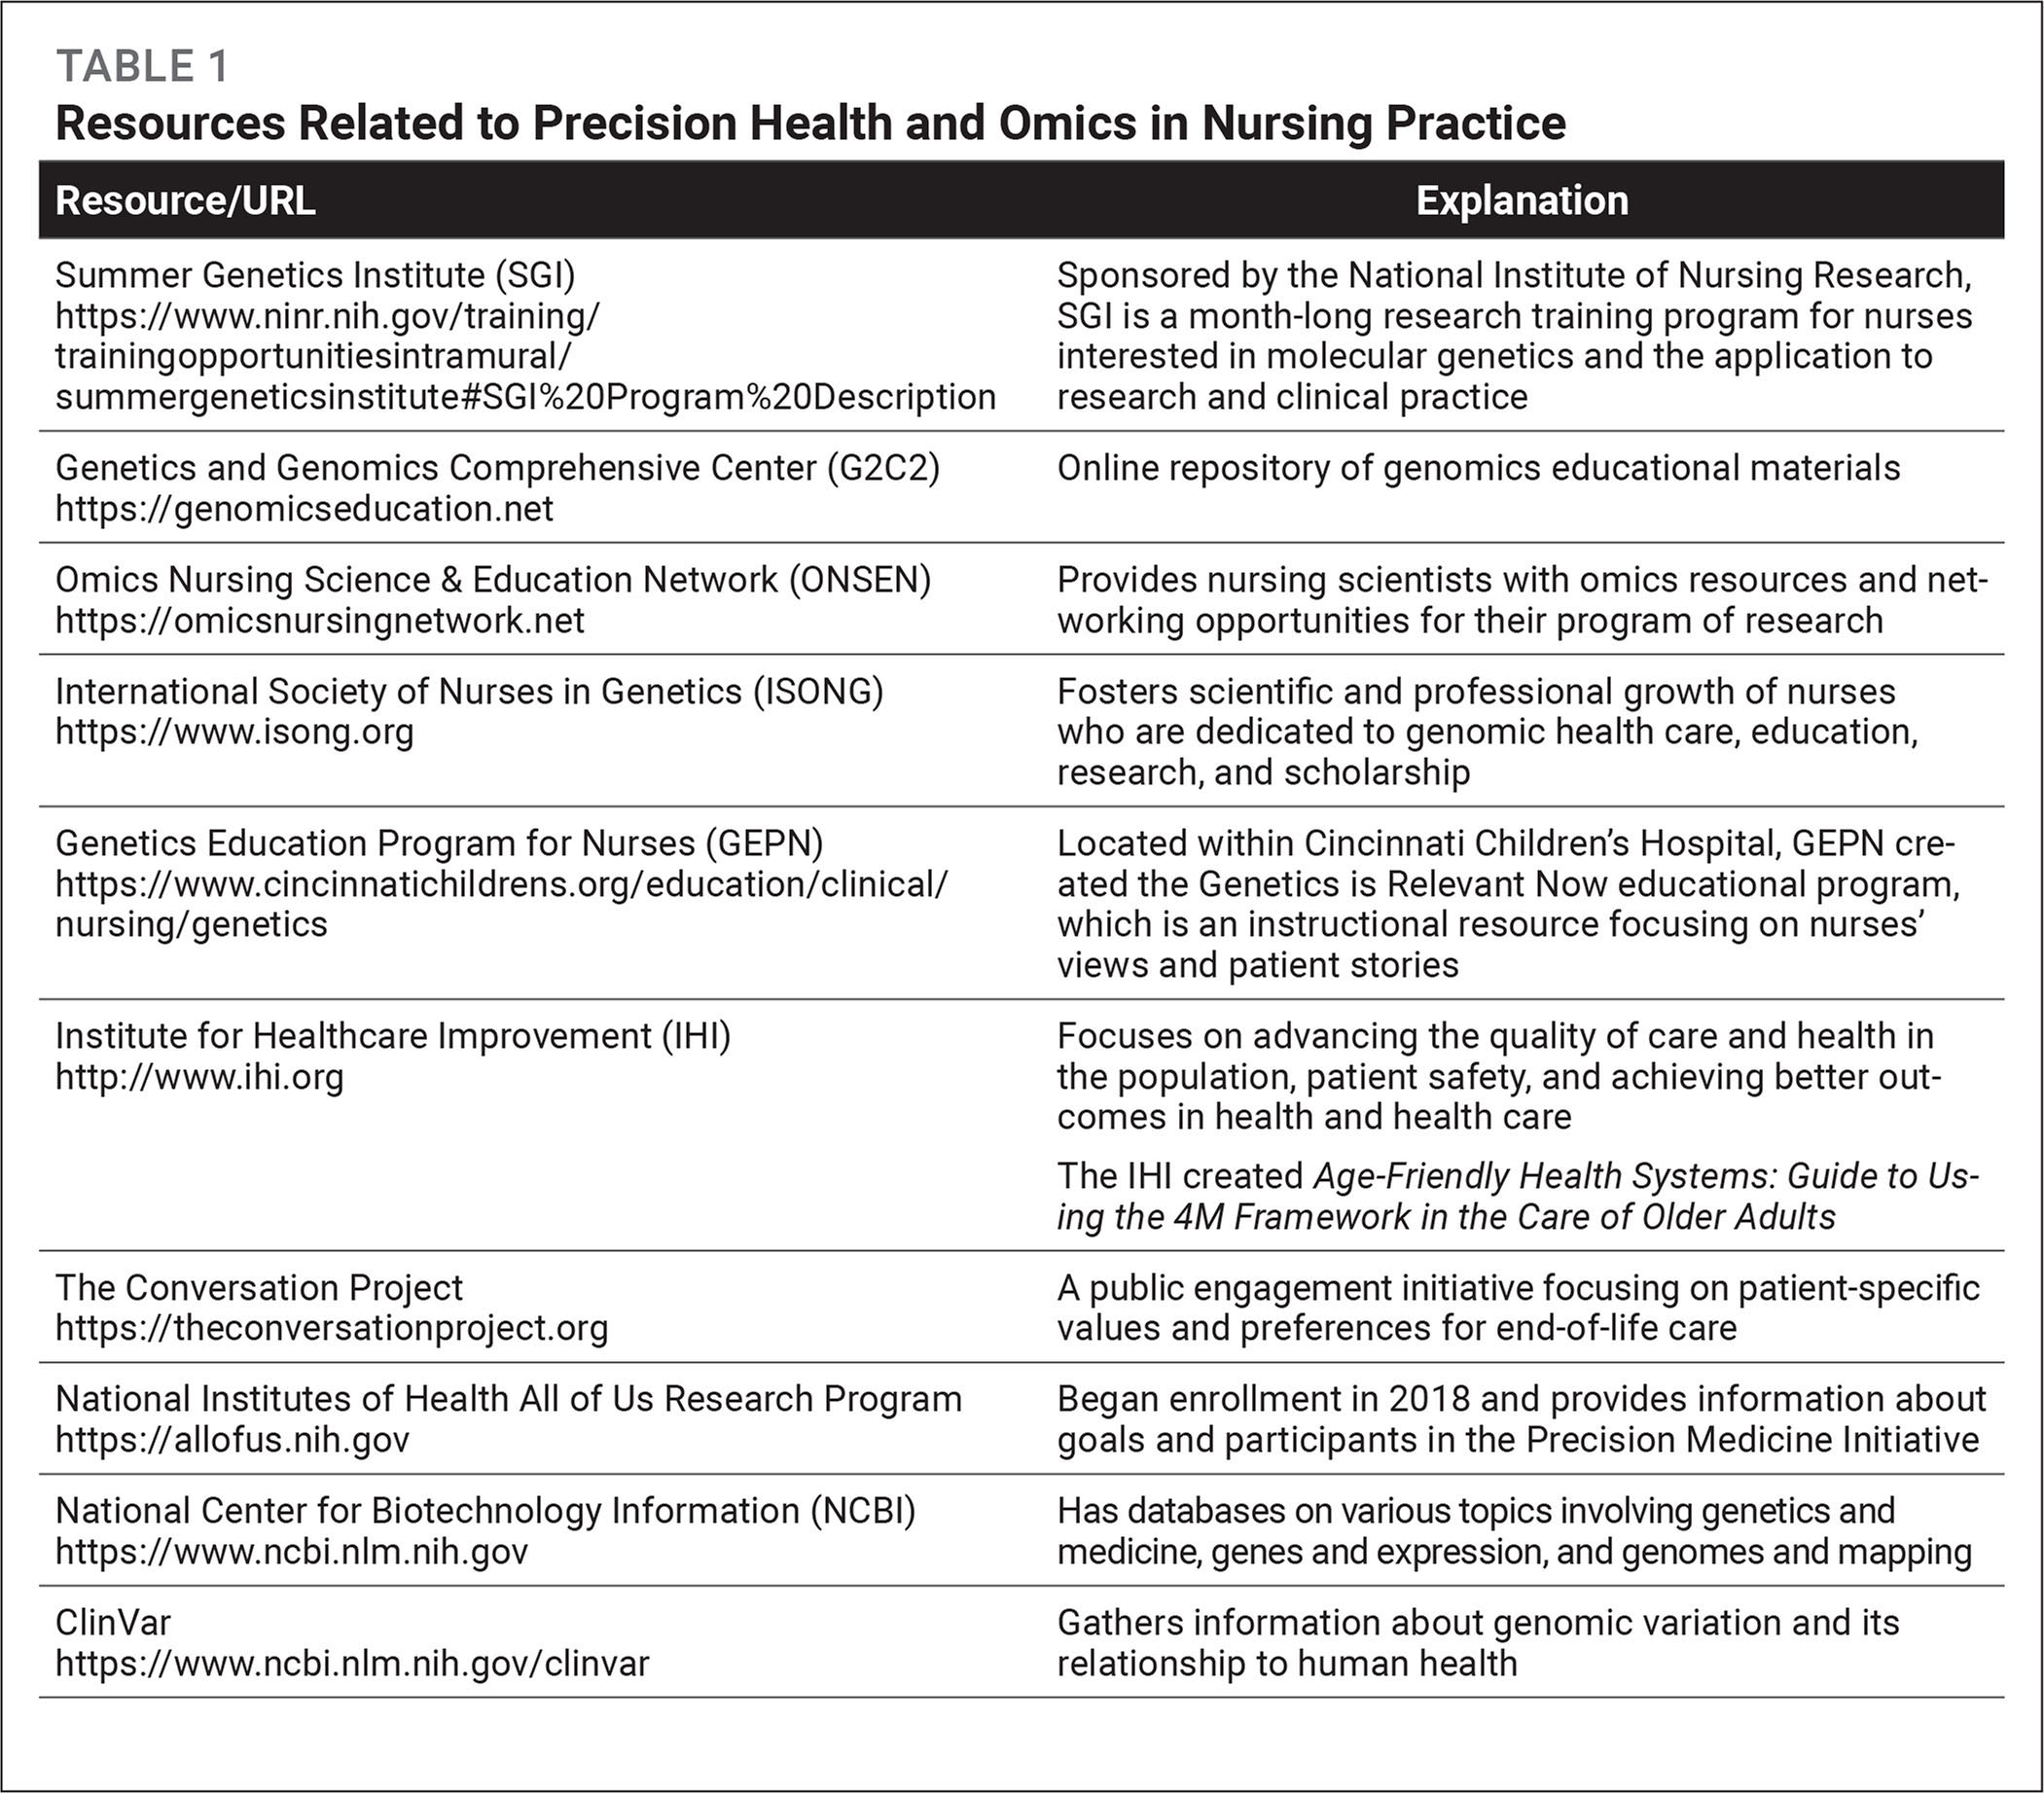 Resources Related to Precision Health and Omics in Nursing Practice